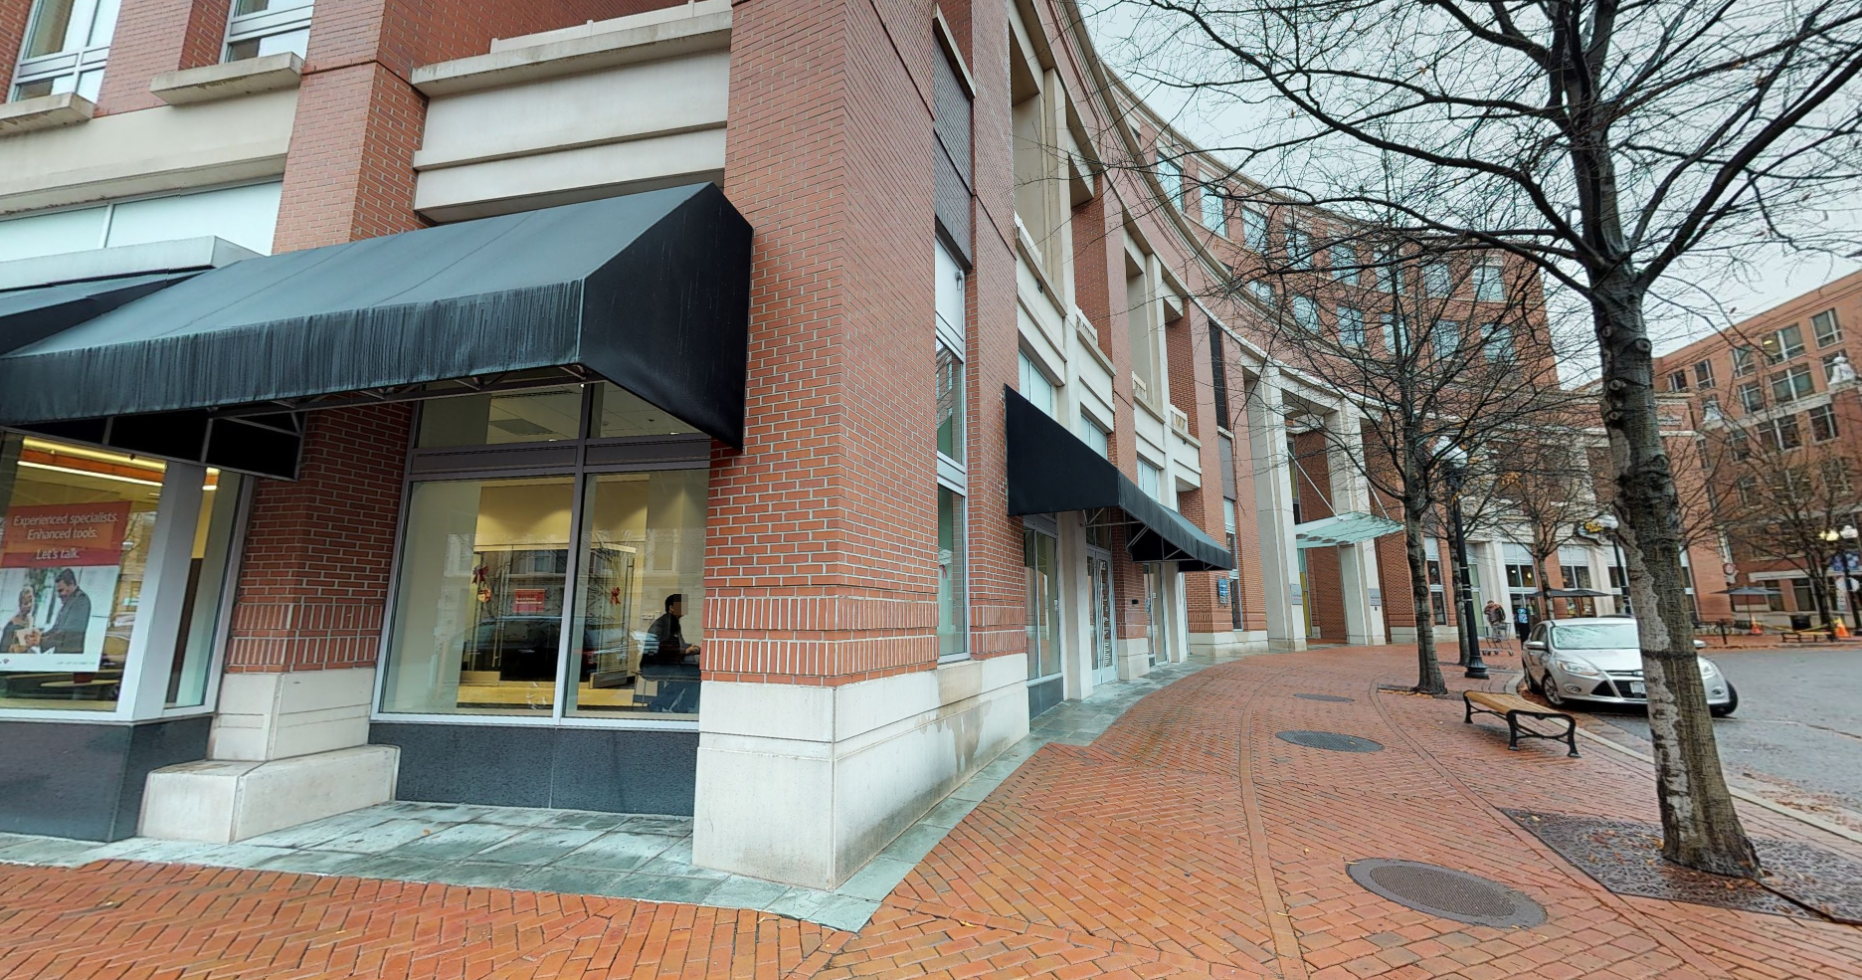 Bank of America financial center with walk-up ATM   415 John Carlyle St, Alexandria, VA 22314